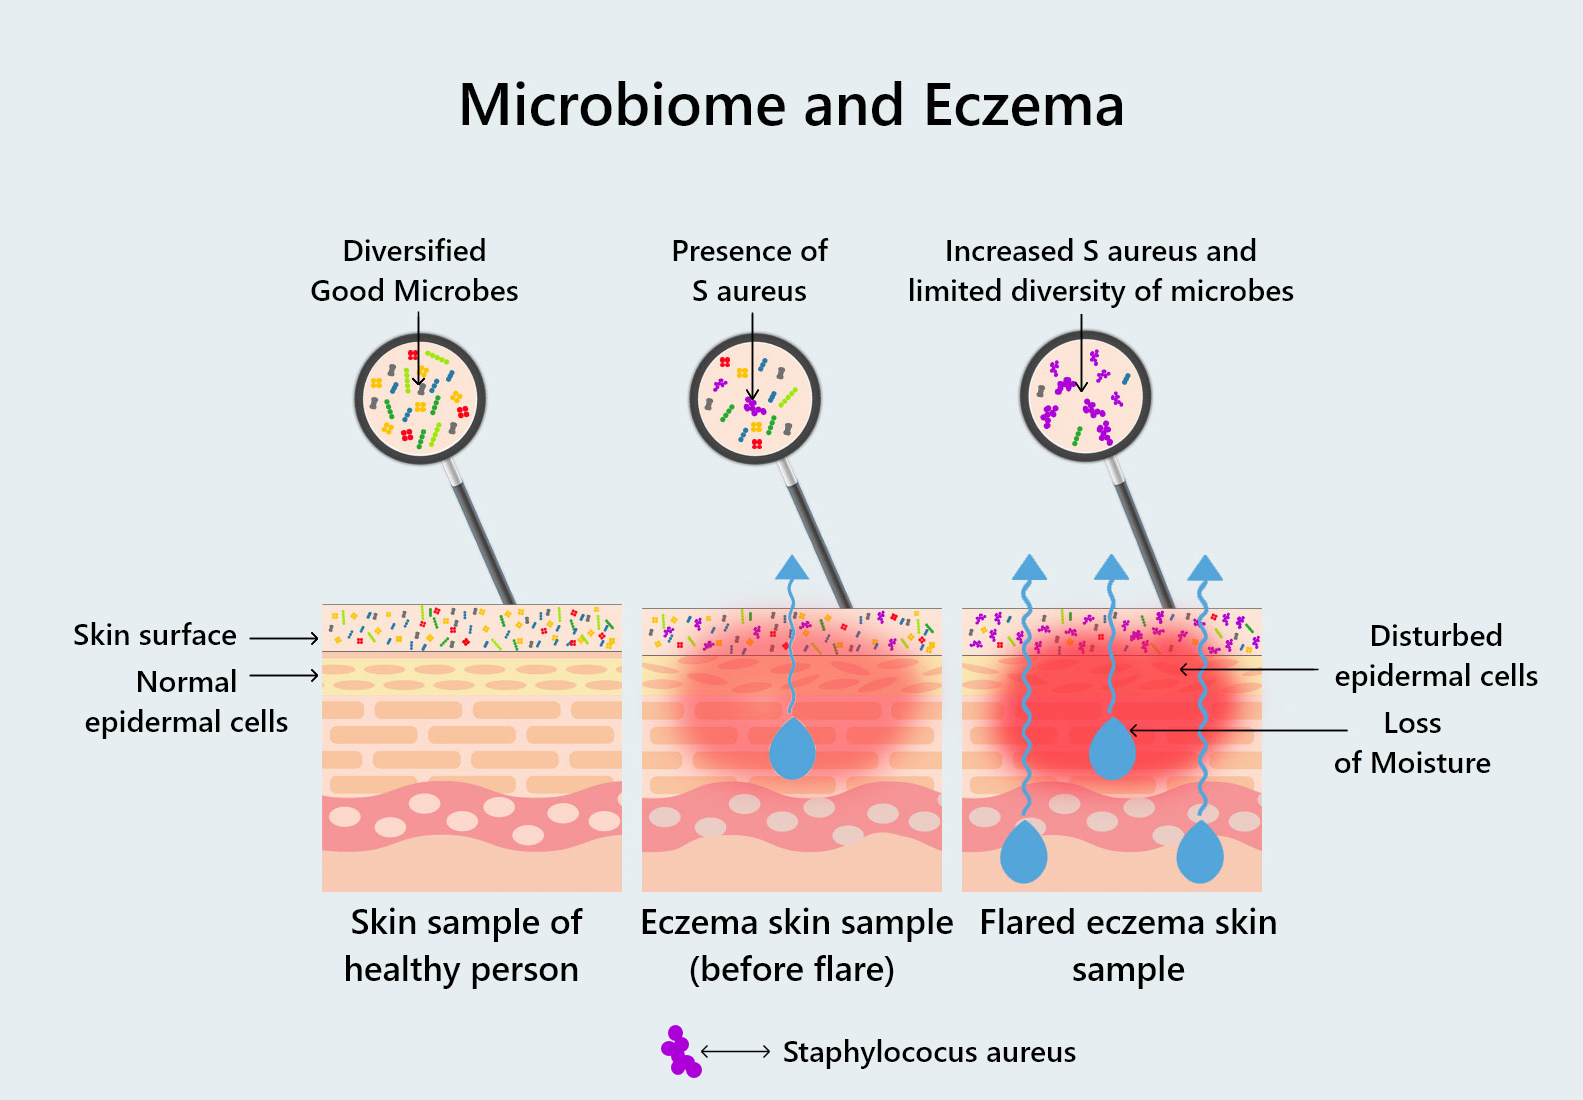 Microbiome and Eczema